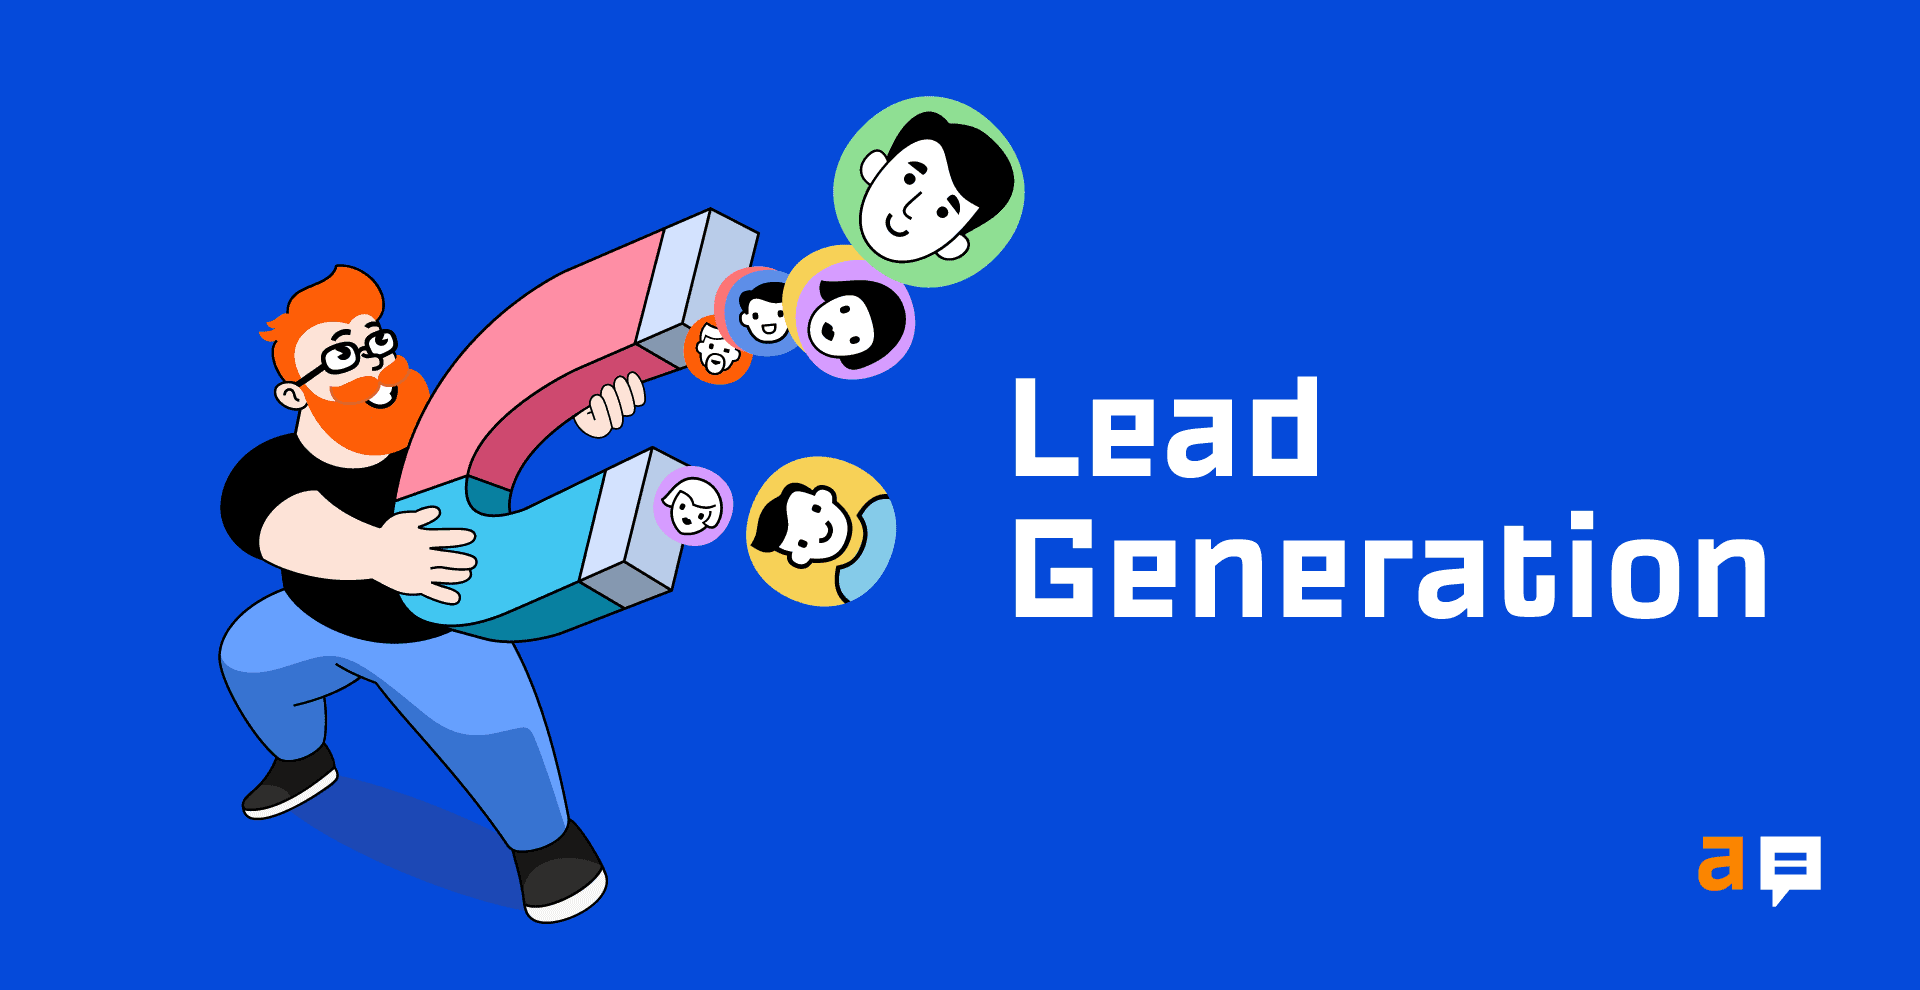 Lead Generation: The Beginner's Guide